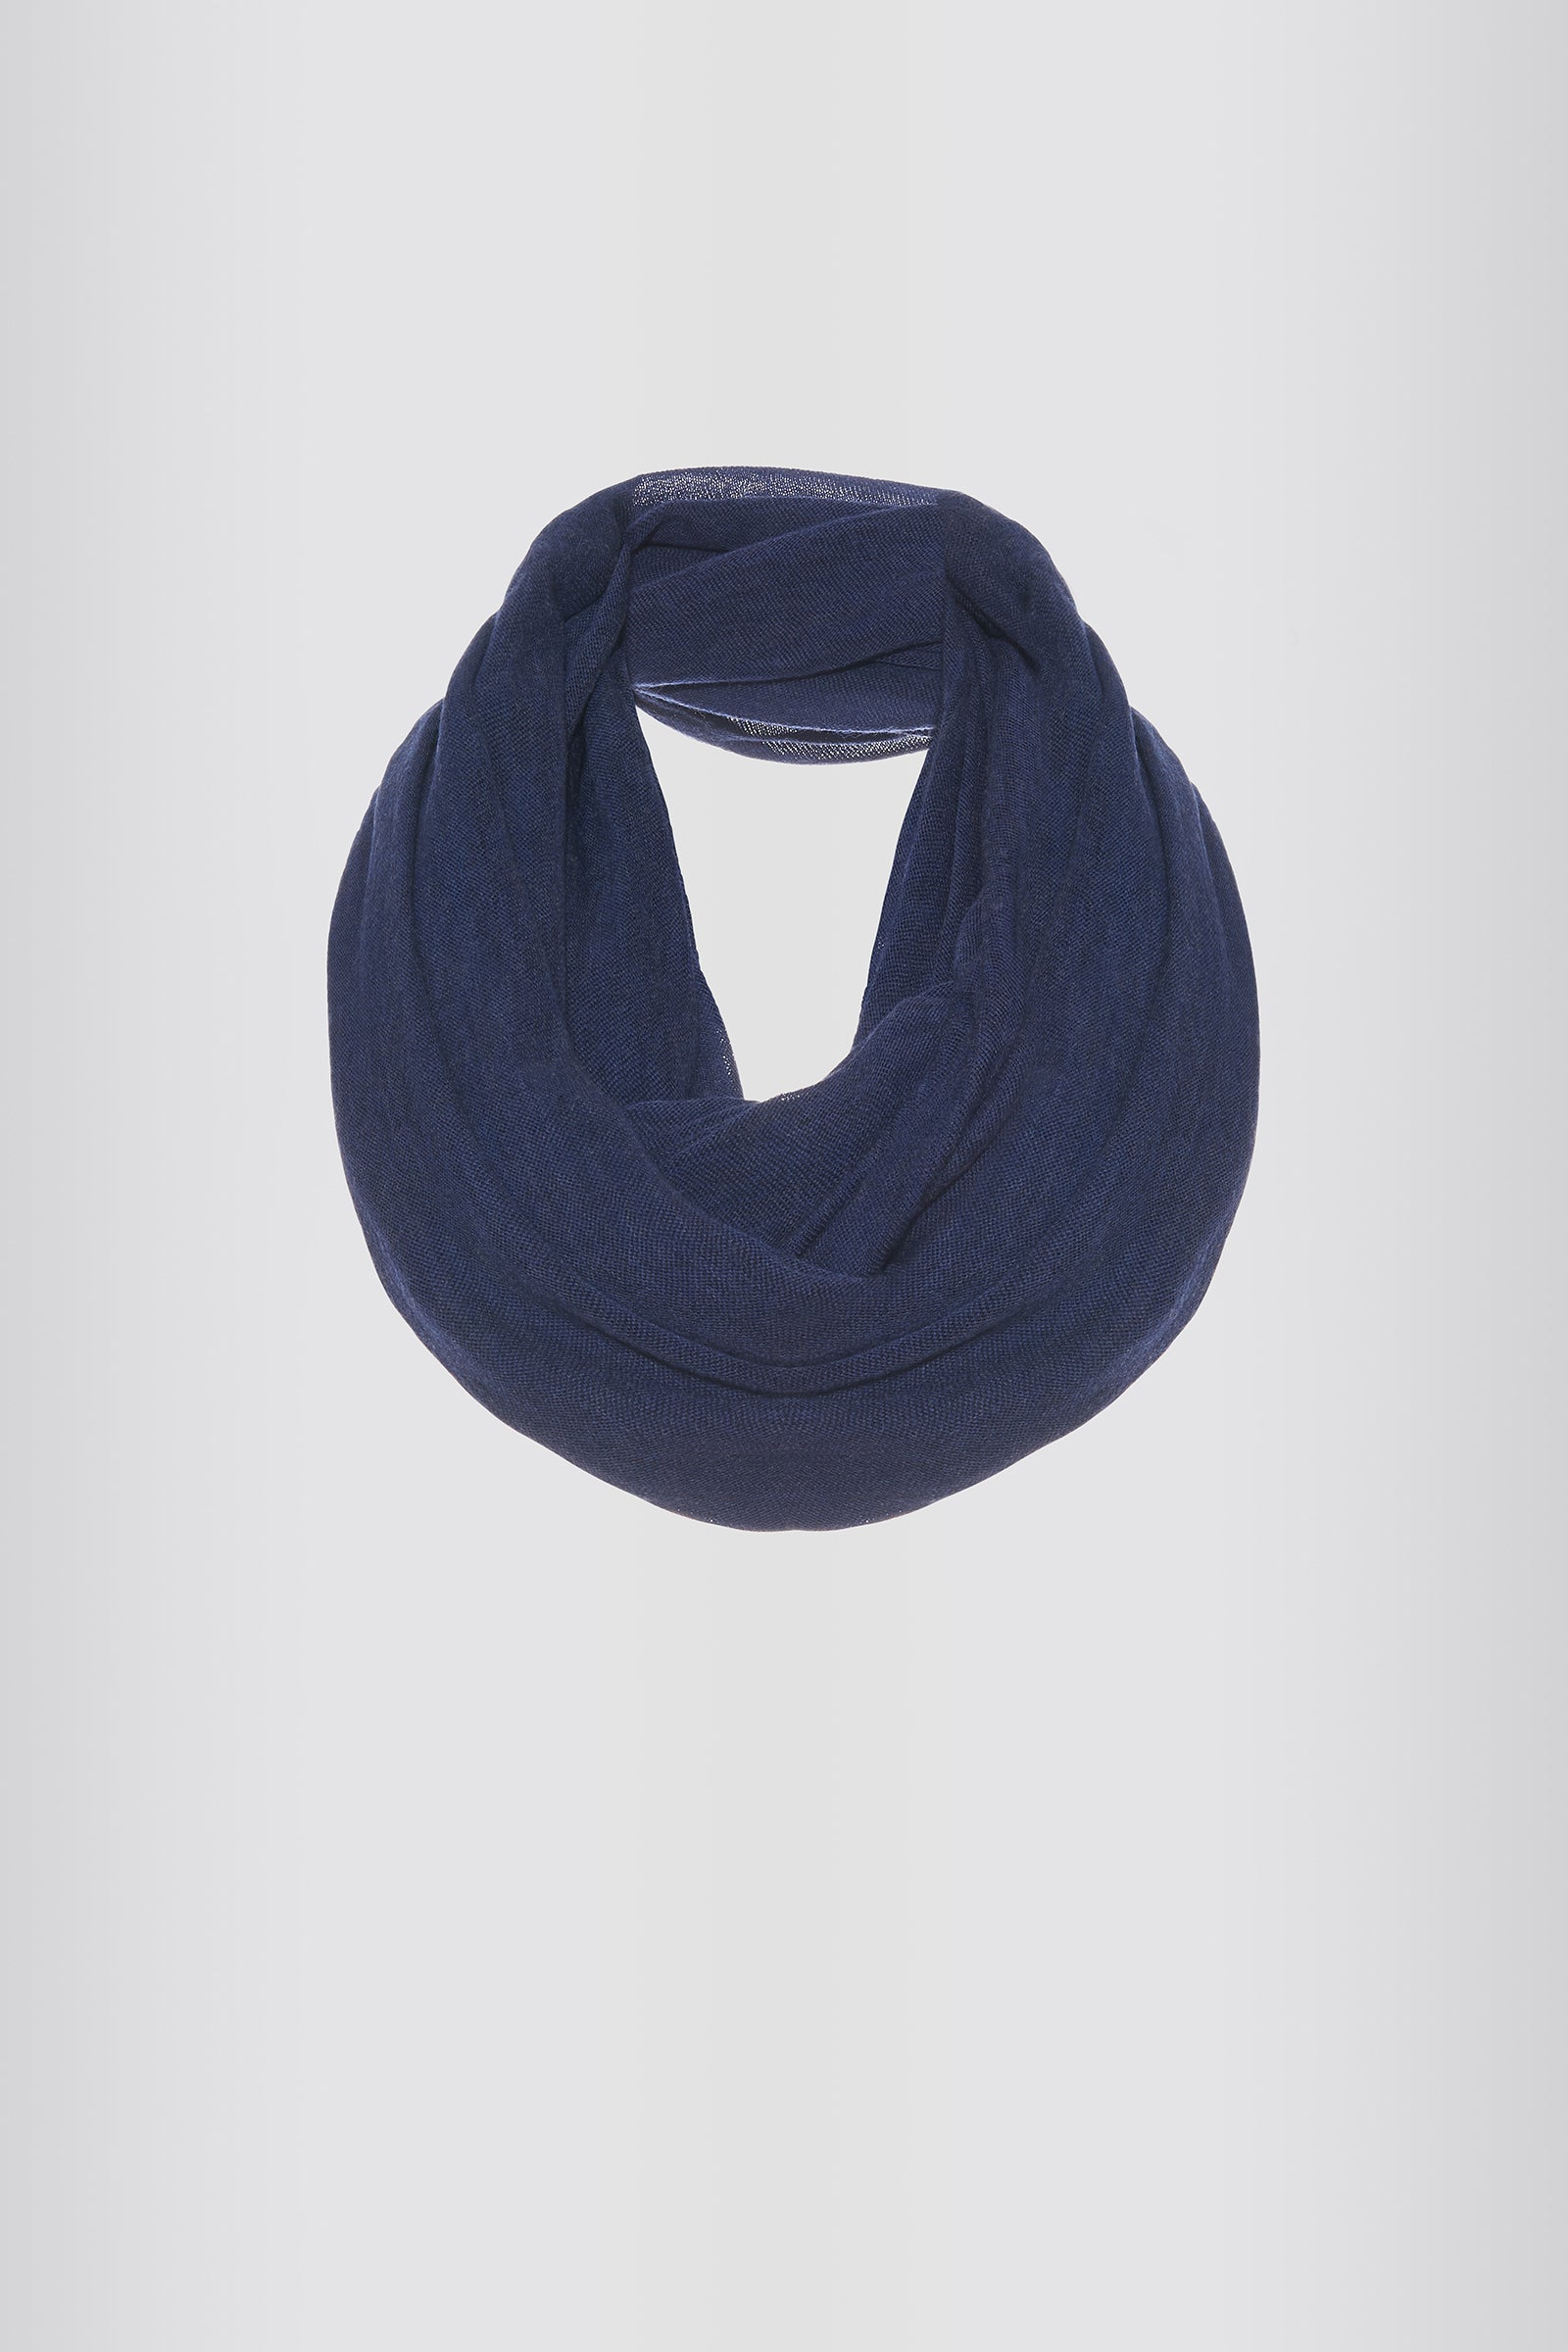 Kal Rieman Infinity Circle Scarf in Navy on Model Front Full View Tied